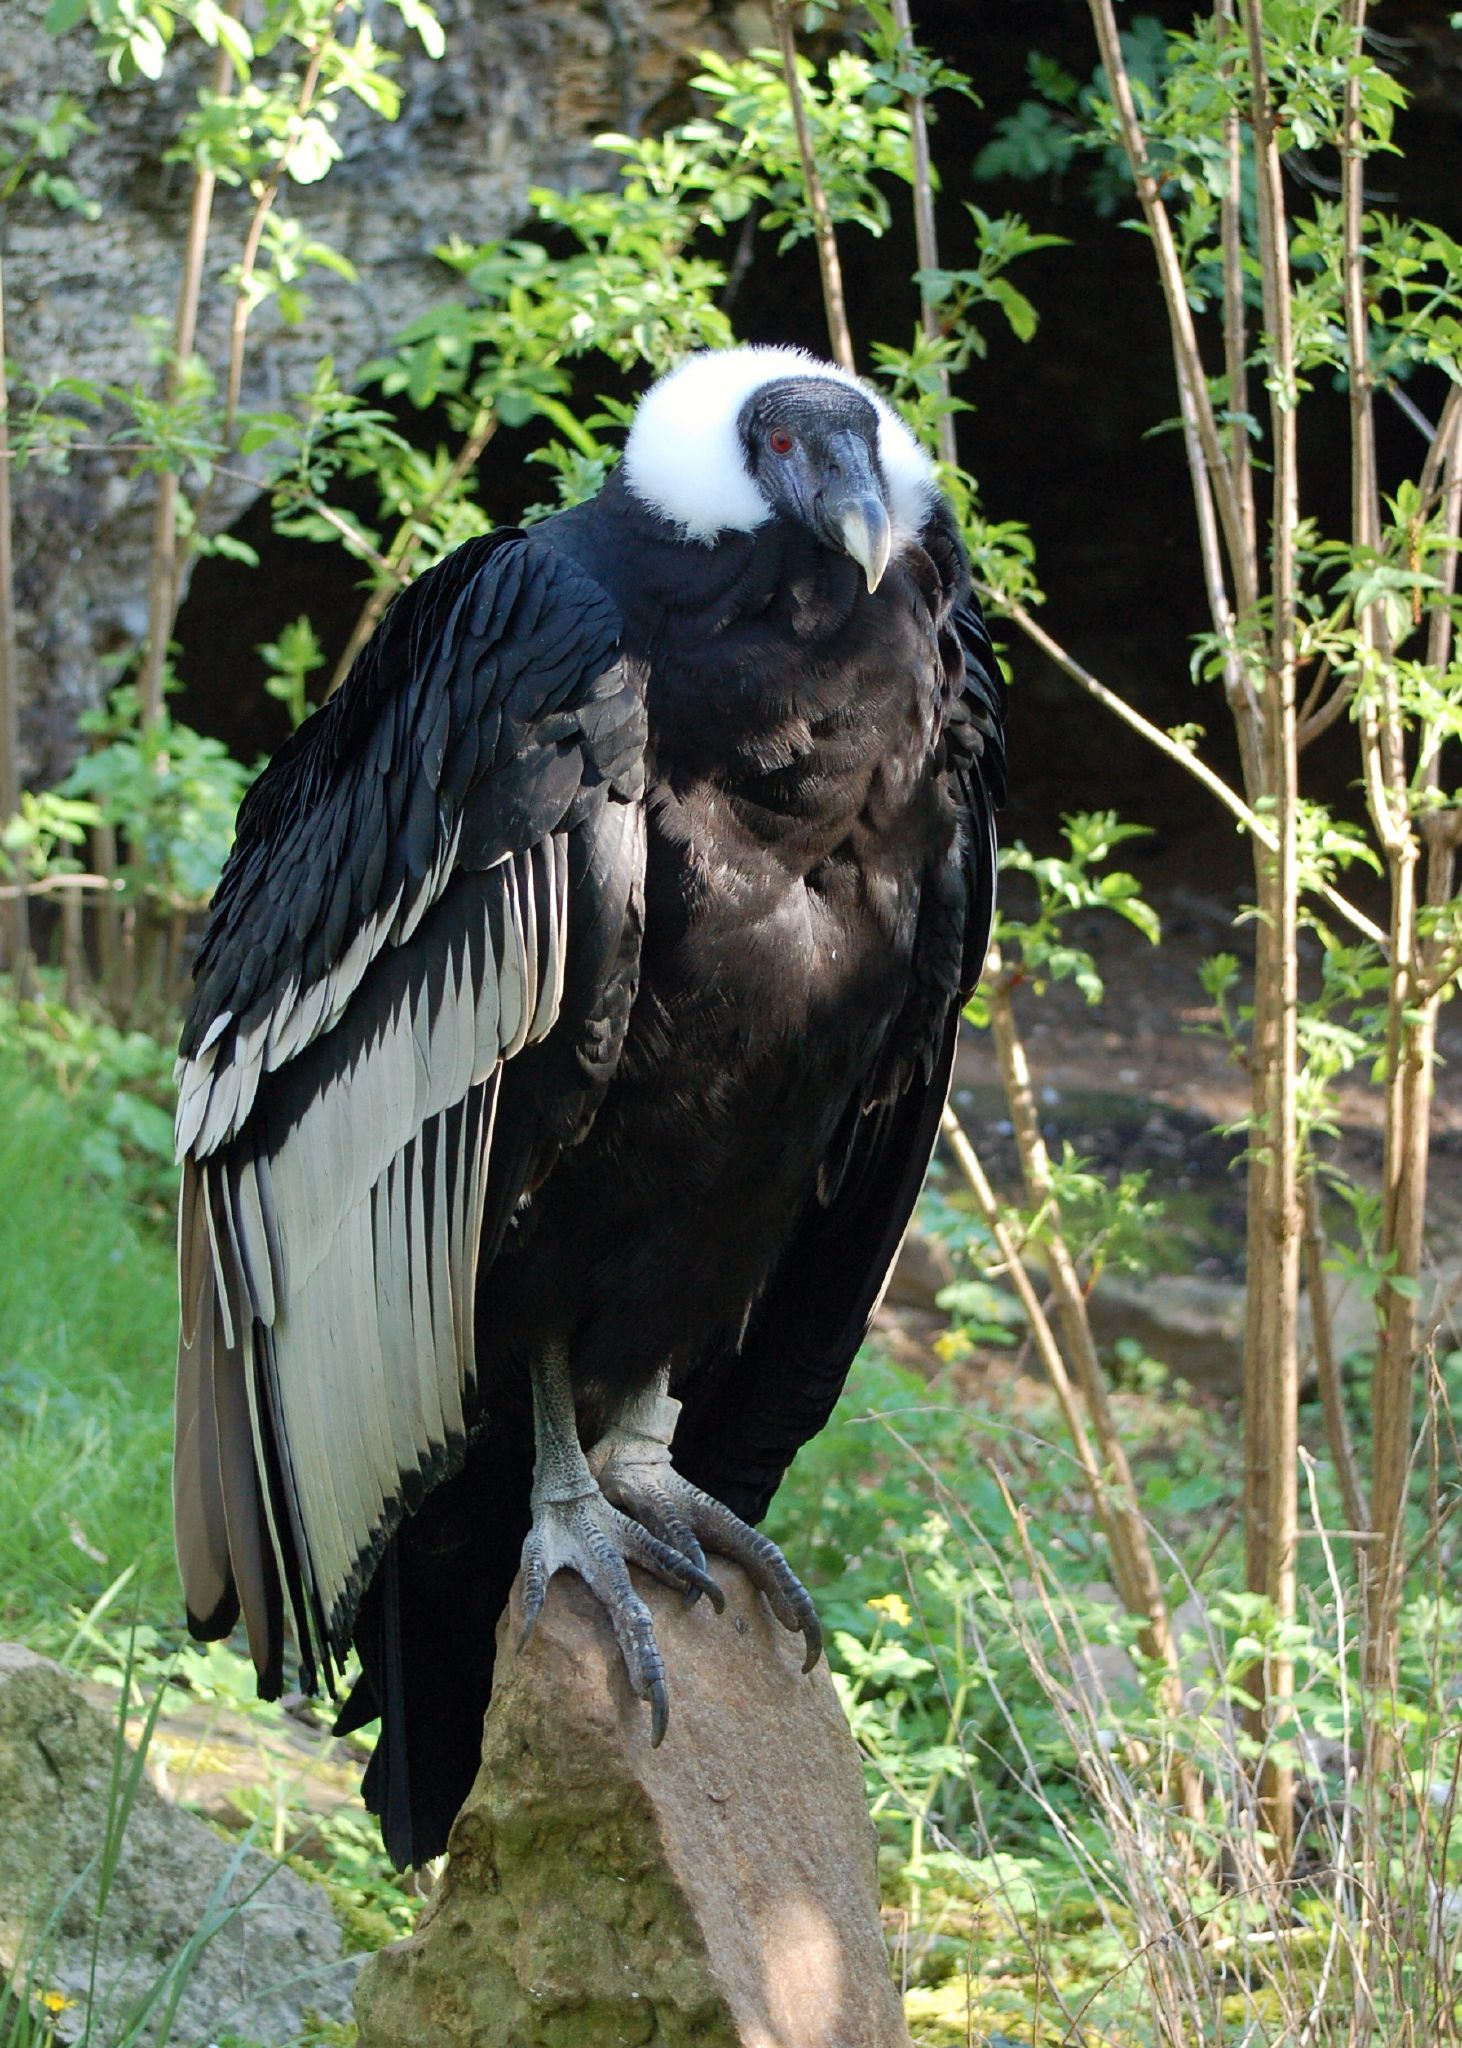 Largest flying bird in the world andean condor - photo#3